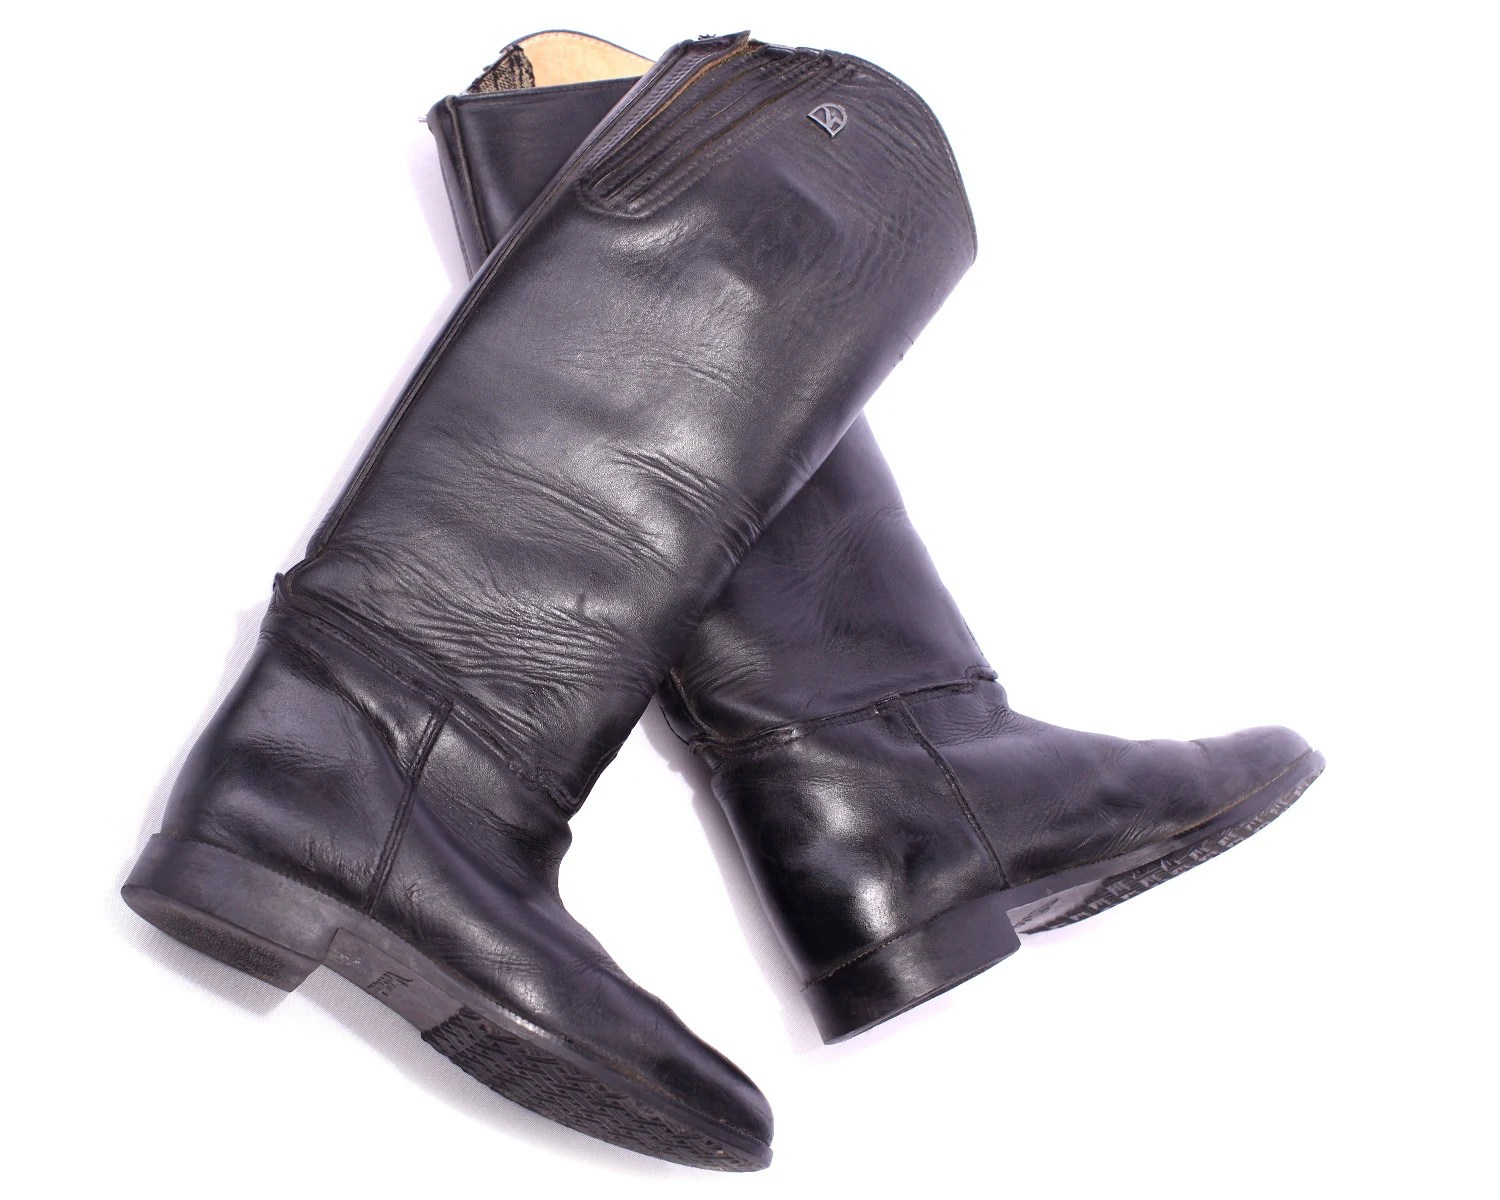 Knee High Leather Boots For Skinny Legs Ville Du Muy